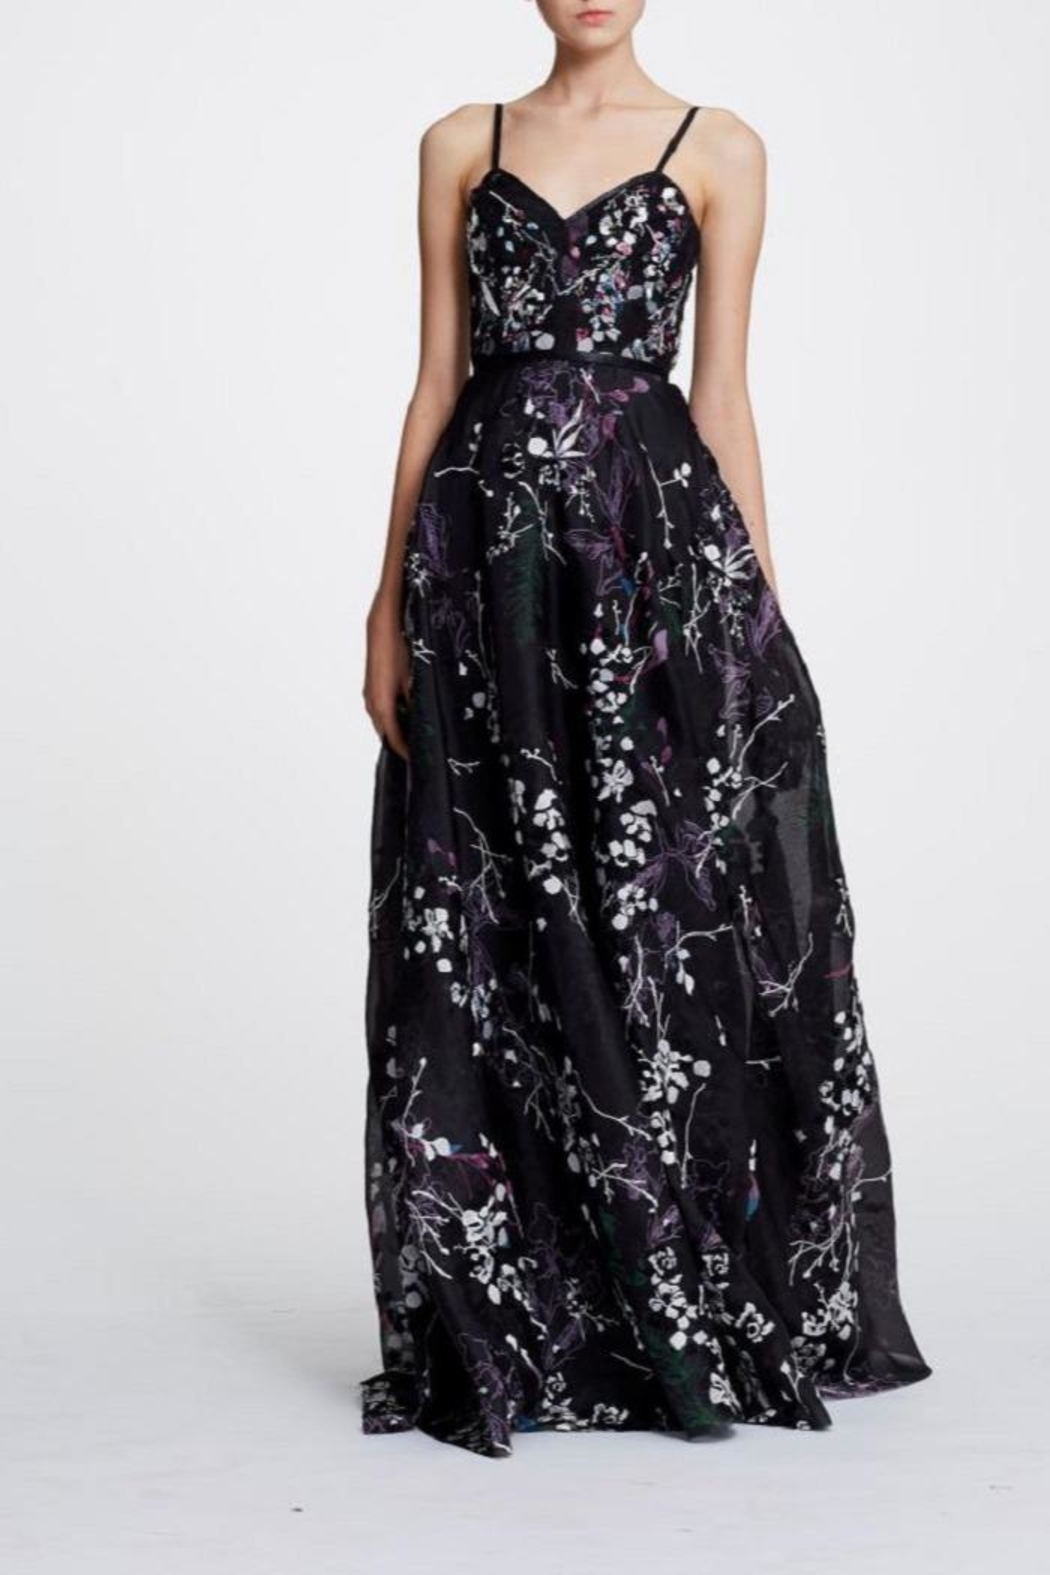 f1f925b6da Marchesa Sleeveless Floral Gown from New Jersey by District 5 ...